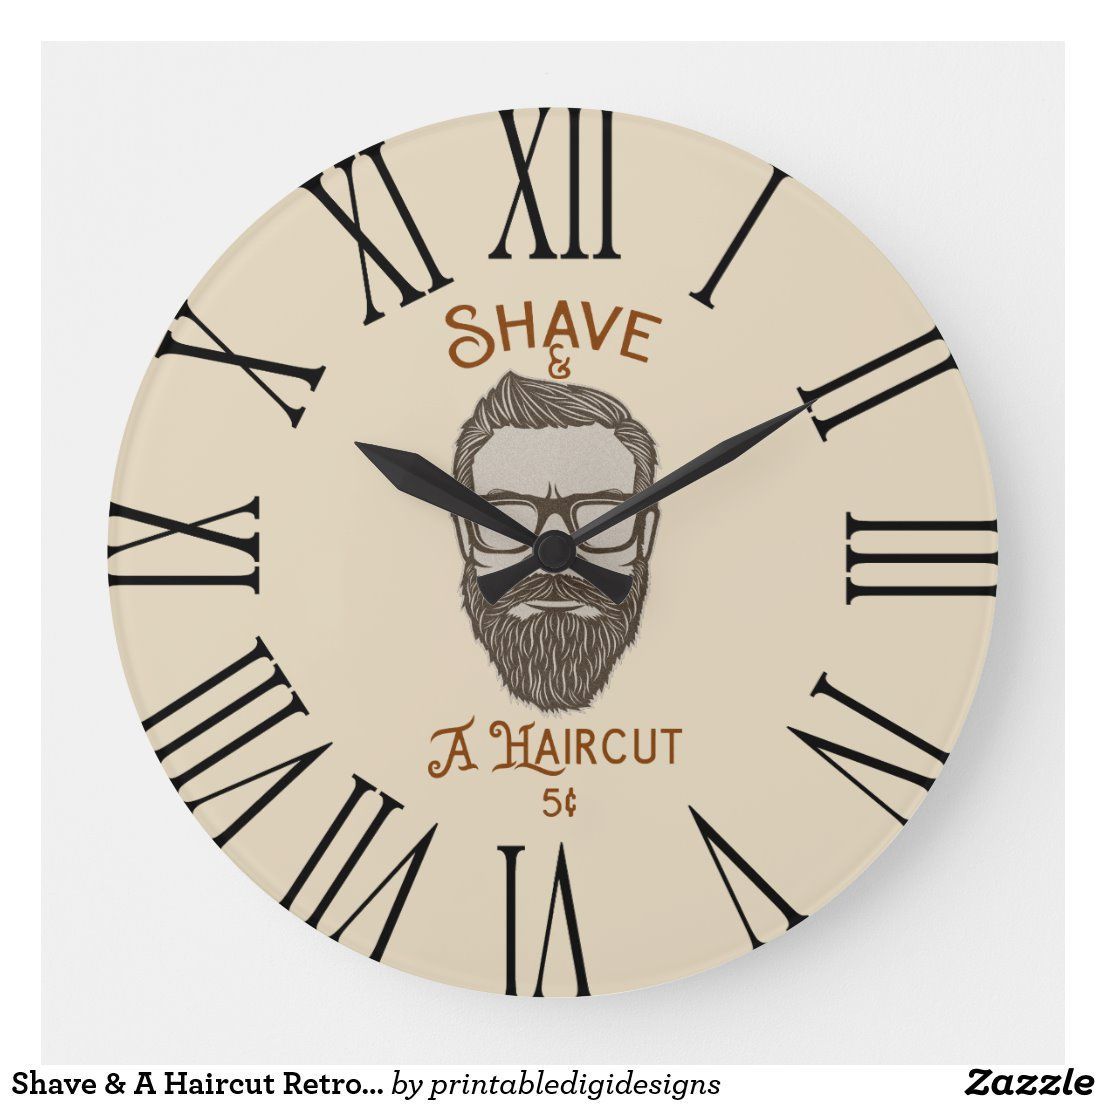 Shave A Haircut Retro Barber Shop Graphic Type Large Clock Zazzle Com In 2020 Barber Shop Large Clock Clock